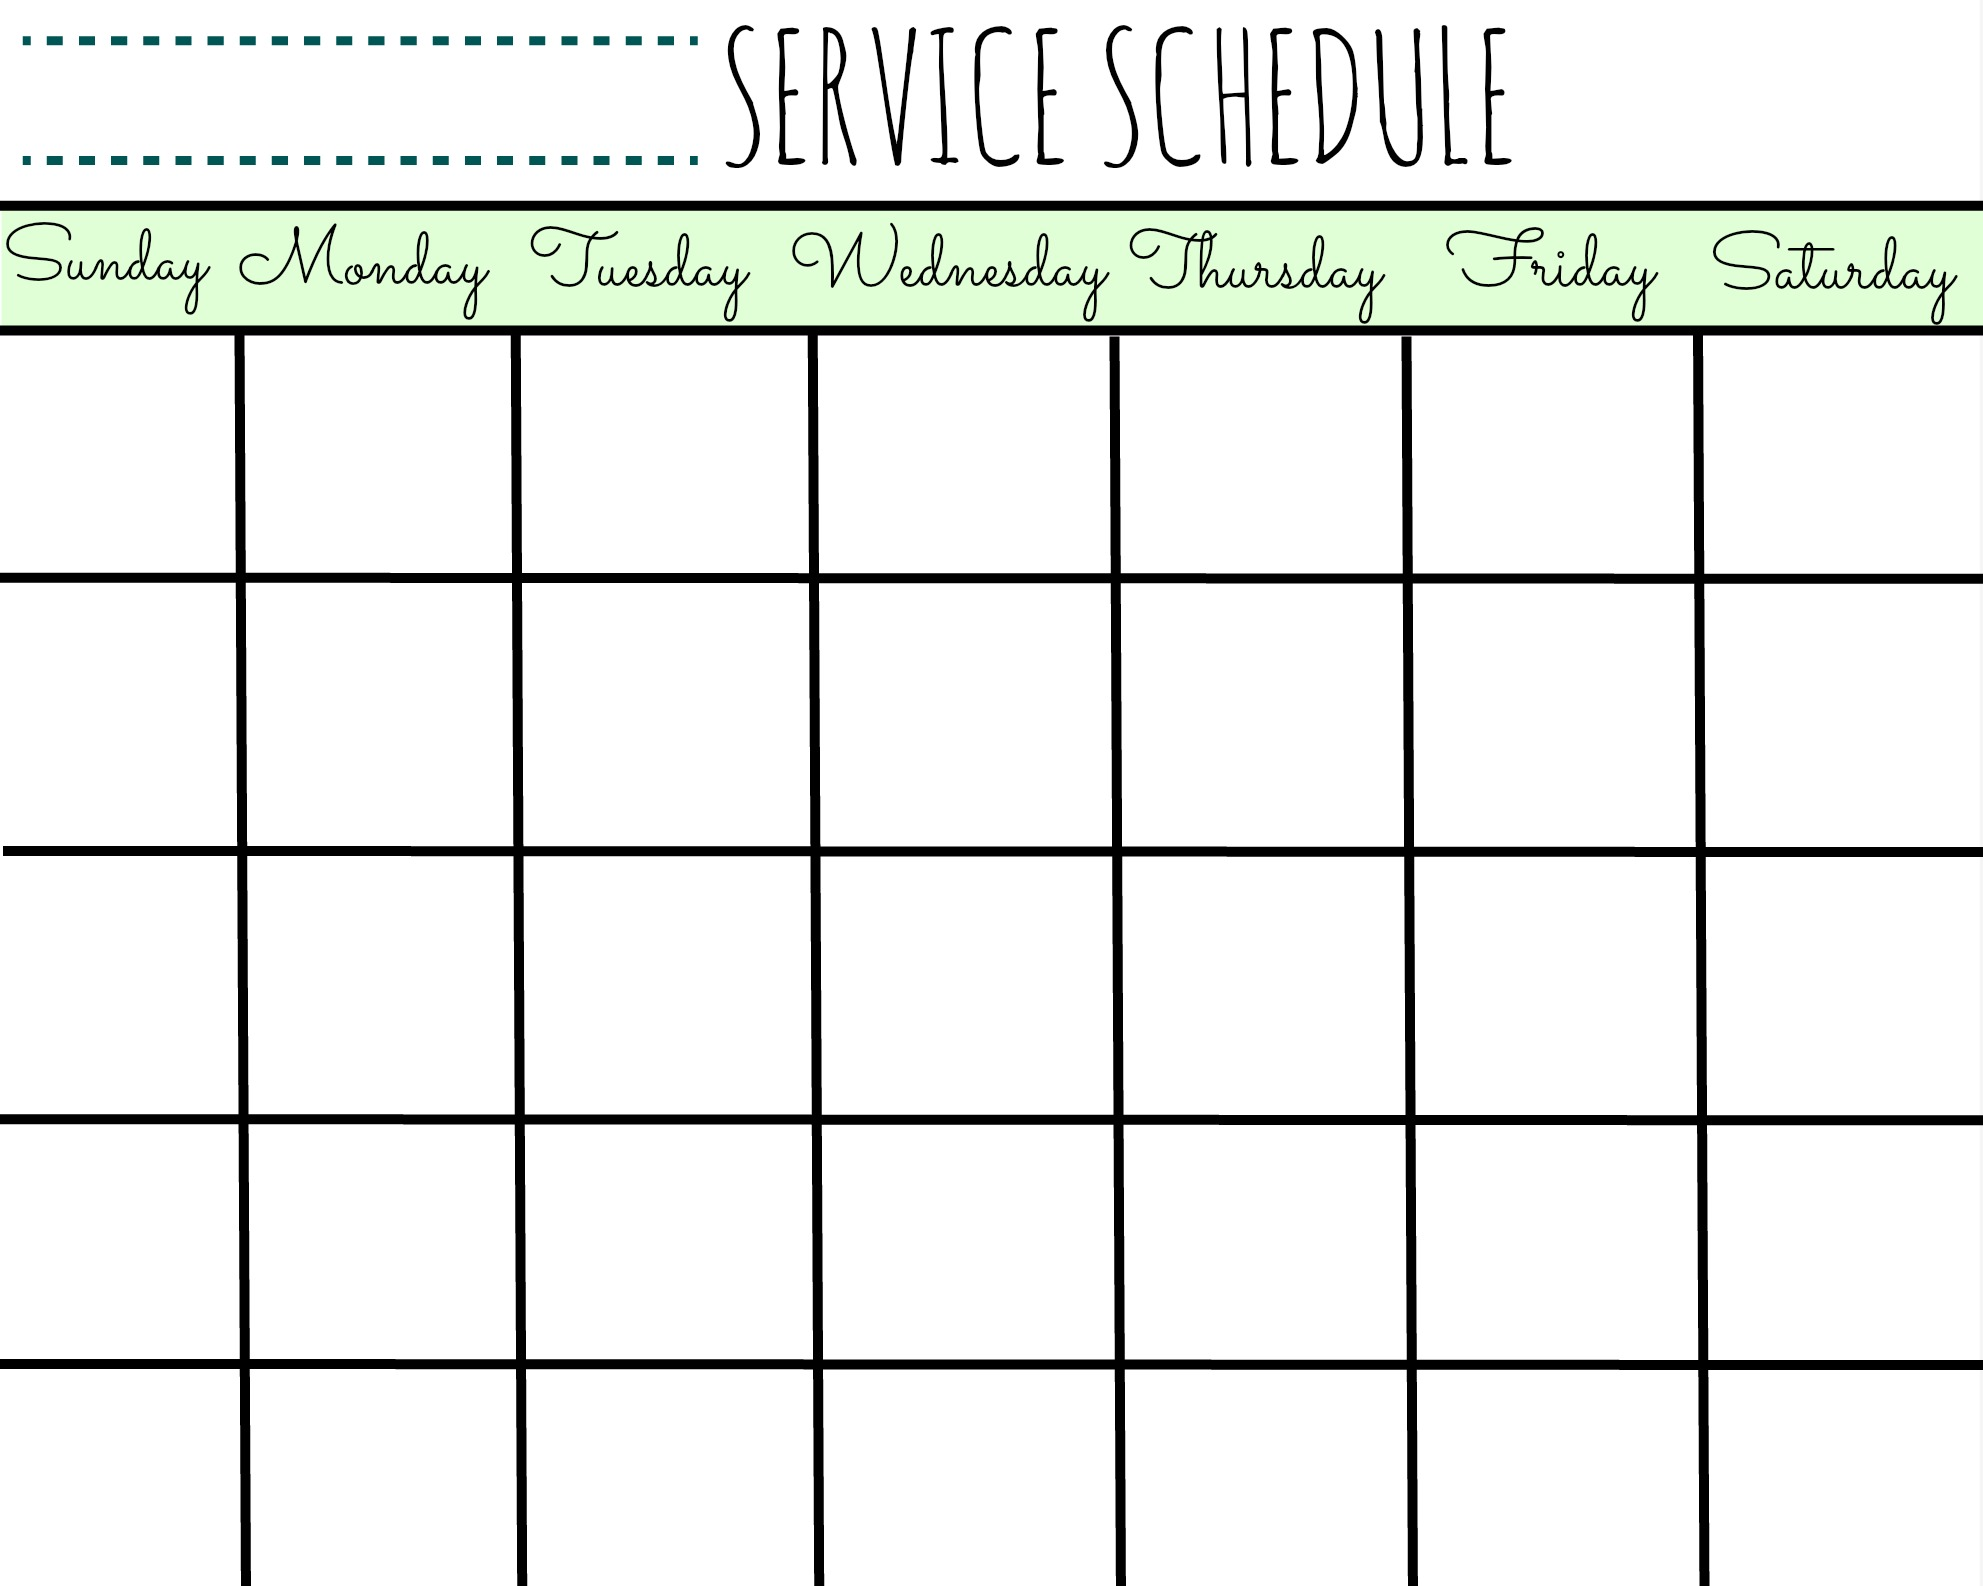 Christmas Decorating Ideas Service Schedule Calendar Printable First Home Love Life